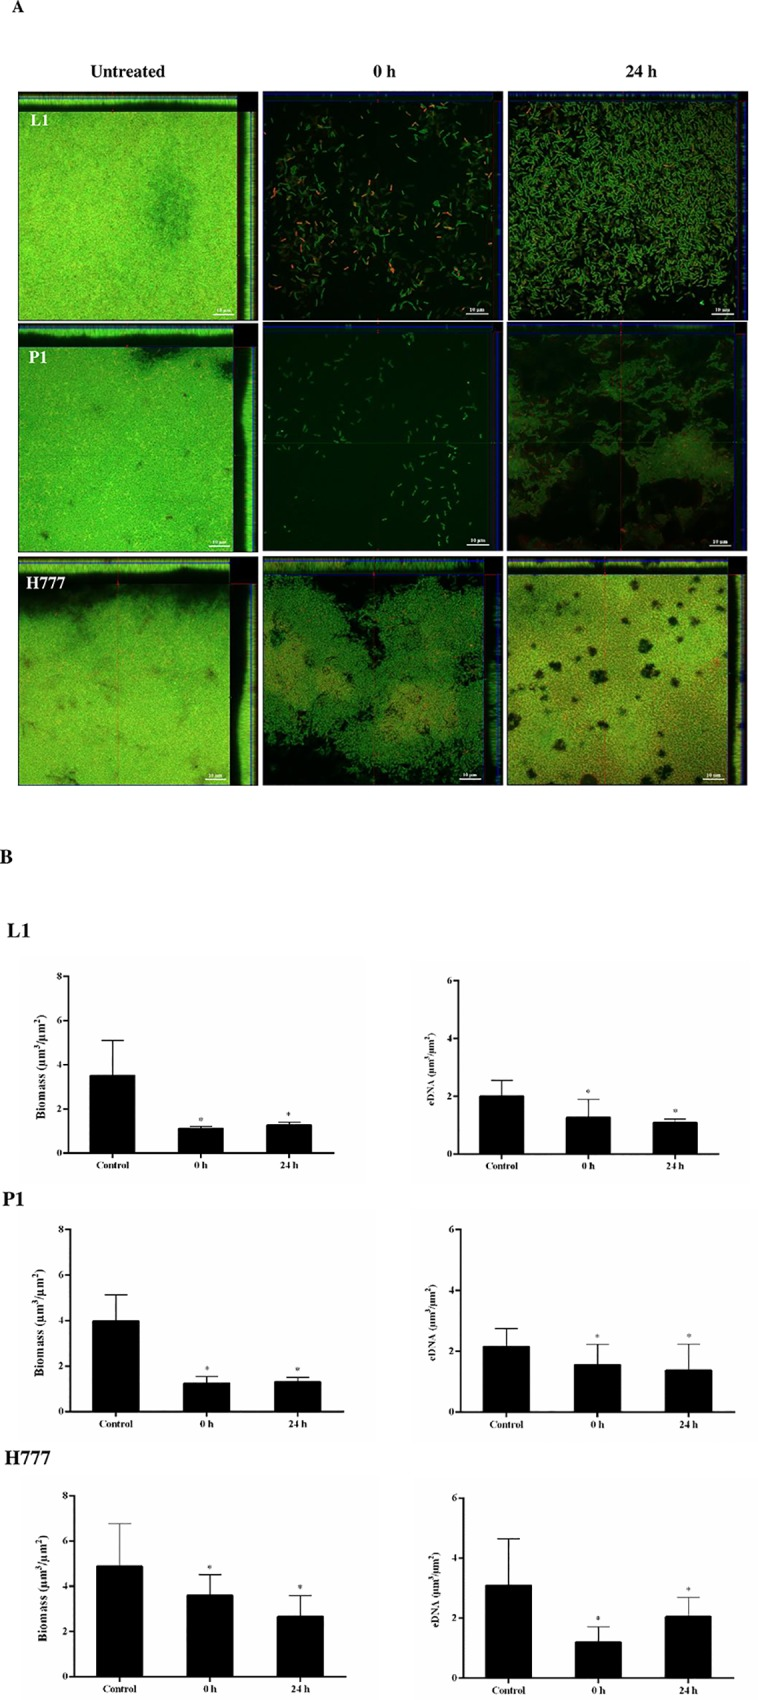 DNase I treatment affects initial attachment and biofilm formation of B . pseudomallei . B . pseudomallei L1, P1 and H777 biofilms were grown in LB at 37°C. The biofilms were treated with DNase I (0.01 U/mL) at 0 h and 24 h post-seeding and maintained until 48 h. (A) CLSM images of DNase I treated biofilm structure and eDNA on coverslips. The 2-day biofilm architecture and quantity of eDNA were examined after staining with FITC-ConA (green) and TOTO-3 (red), respectively. The scale bars indicate 10 μm. The images were taken using a Zeiss 800 CLSM microscope (63× magnification). (B) COMSTAT image analysis of DNase I-treated B . pseudomallei biofilms and eDNA. Data represents mean ± SD of 18 images from three independent experiments. * p